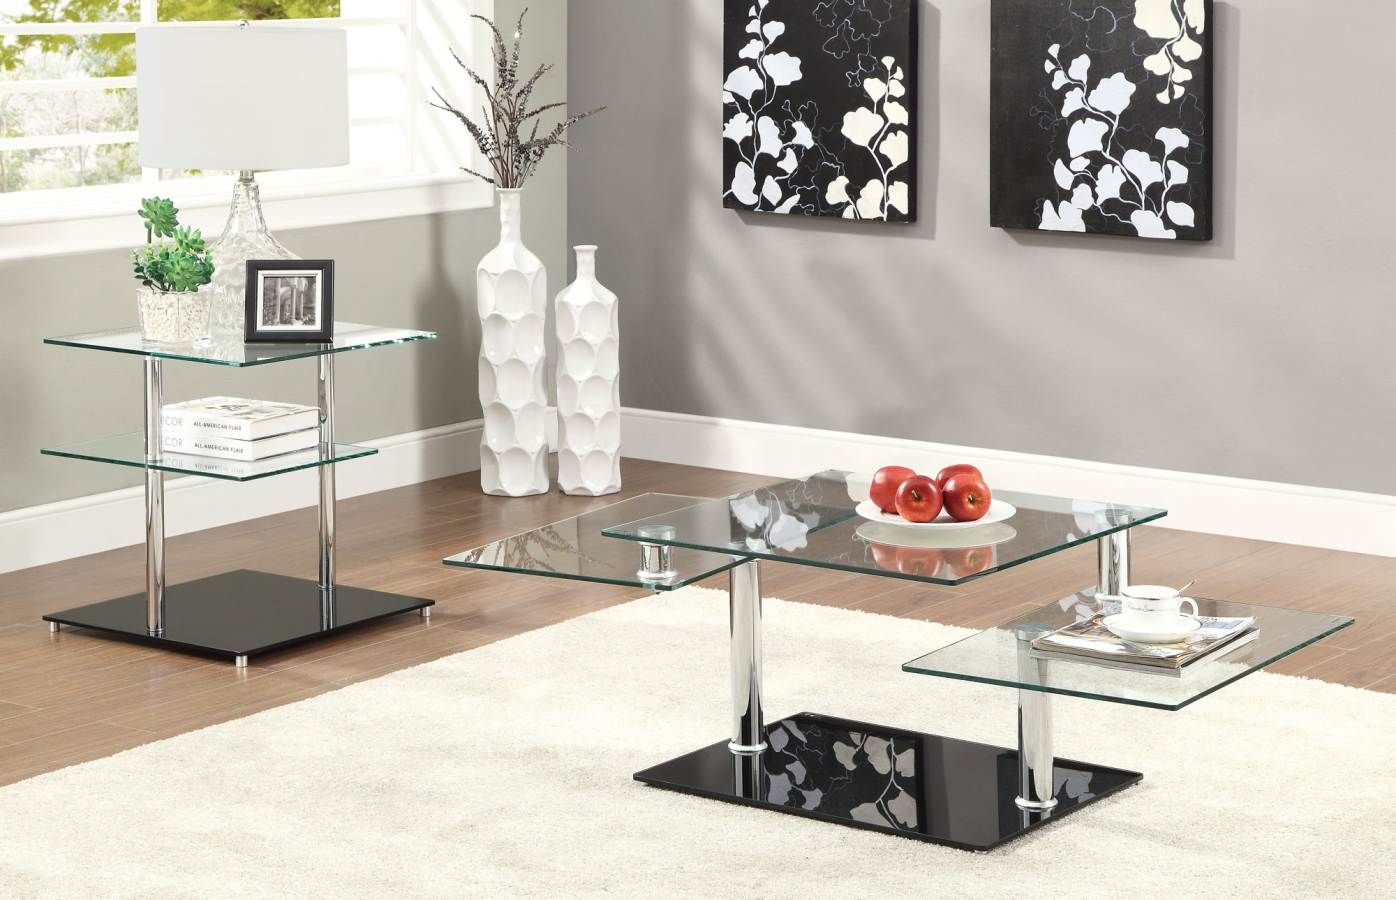 Contemporary Glass And Chrome Coffee Table Set Coffee Table Home Coffee Tables Coffee Table Setting [ 900 x 1396 Pixel ]